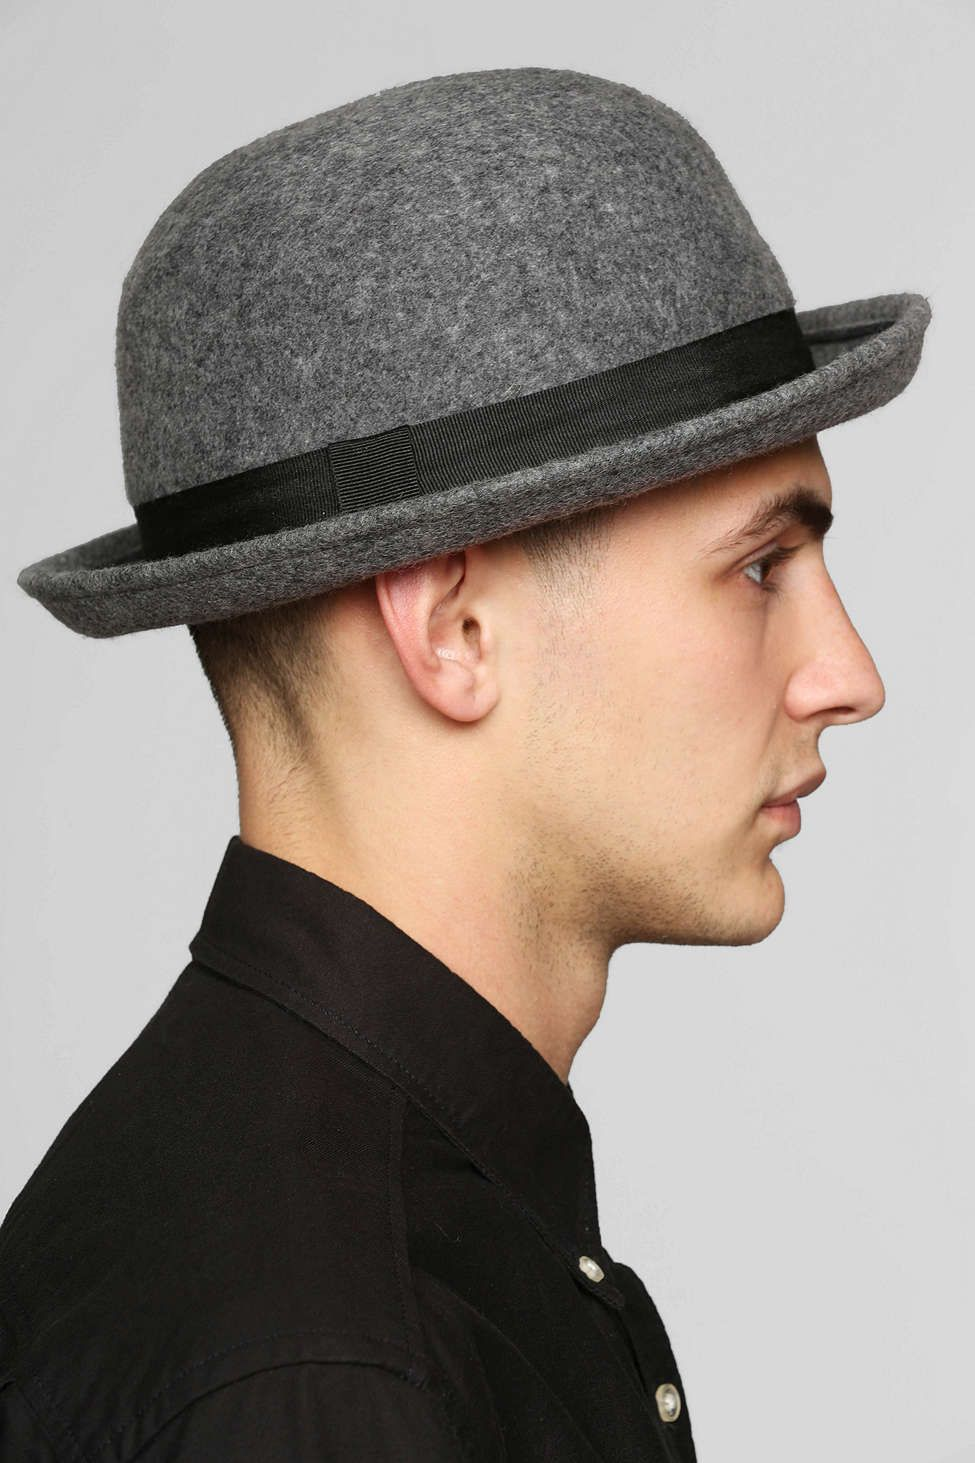 Is The Bowler Hat Making A Comeback? The Read The Journal